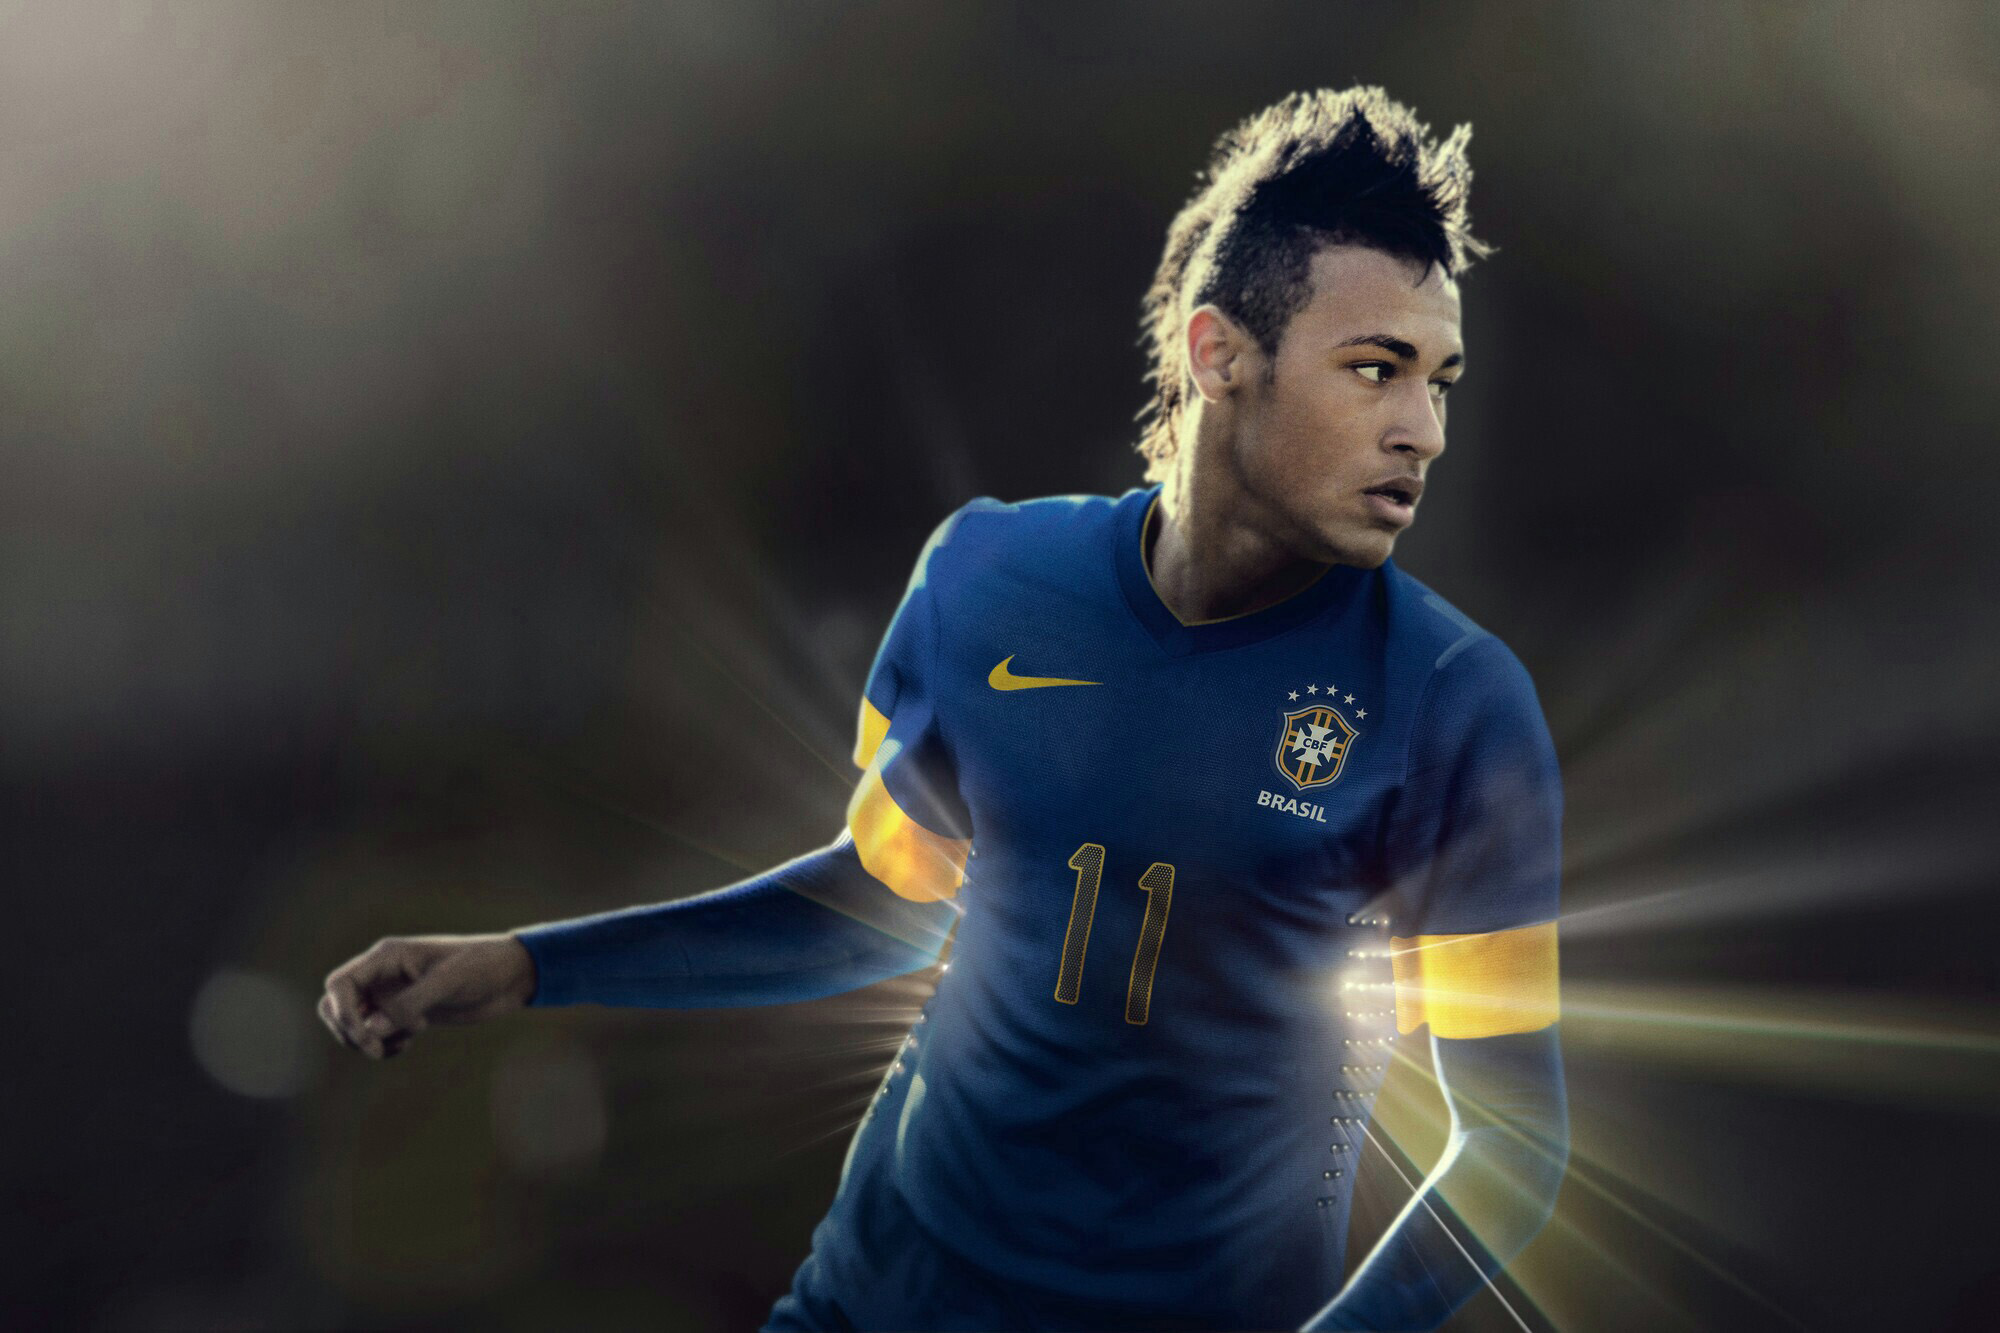 Pin neymar da silva on pinterest